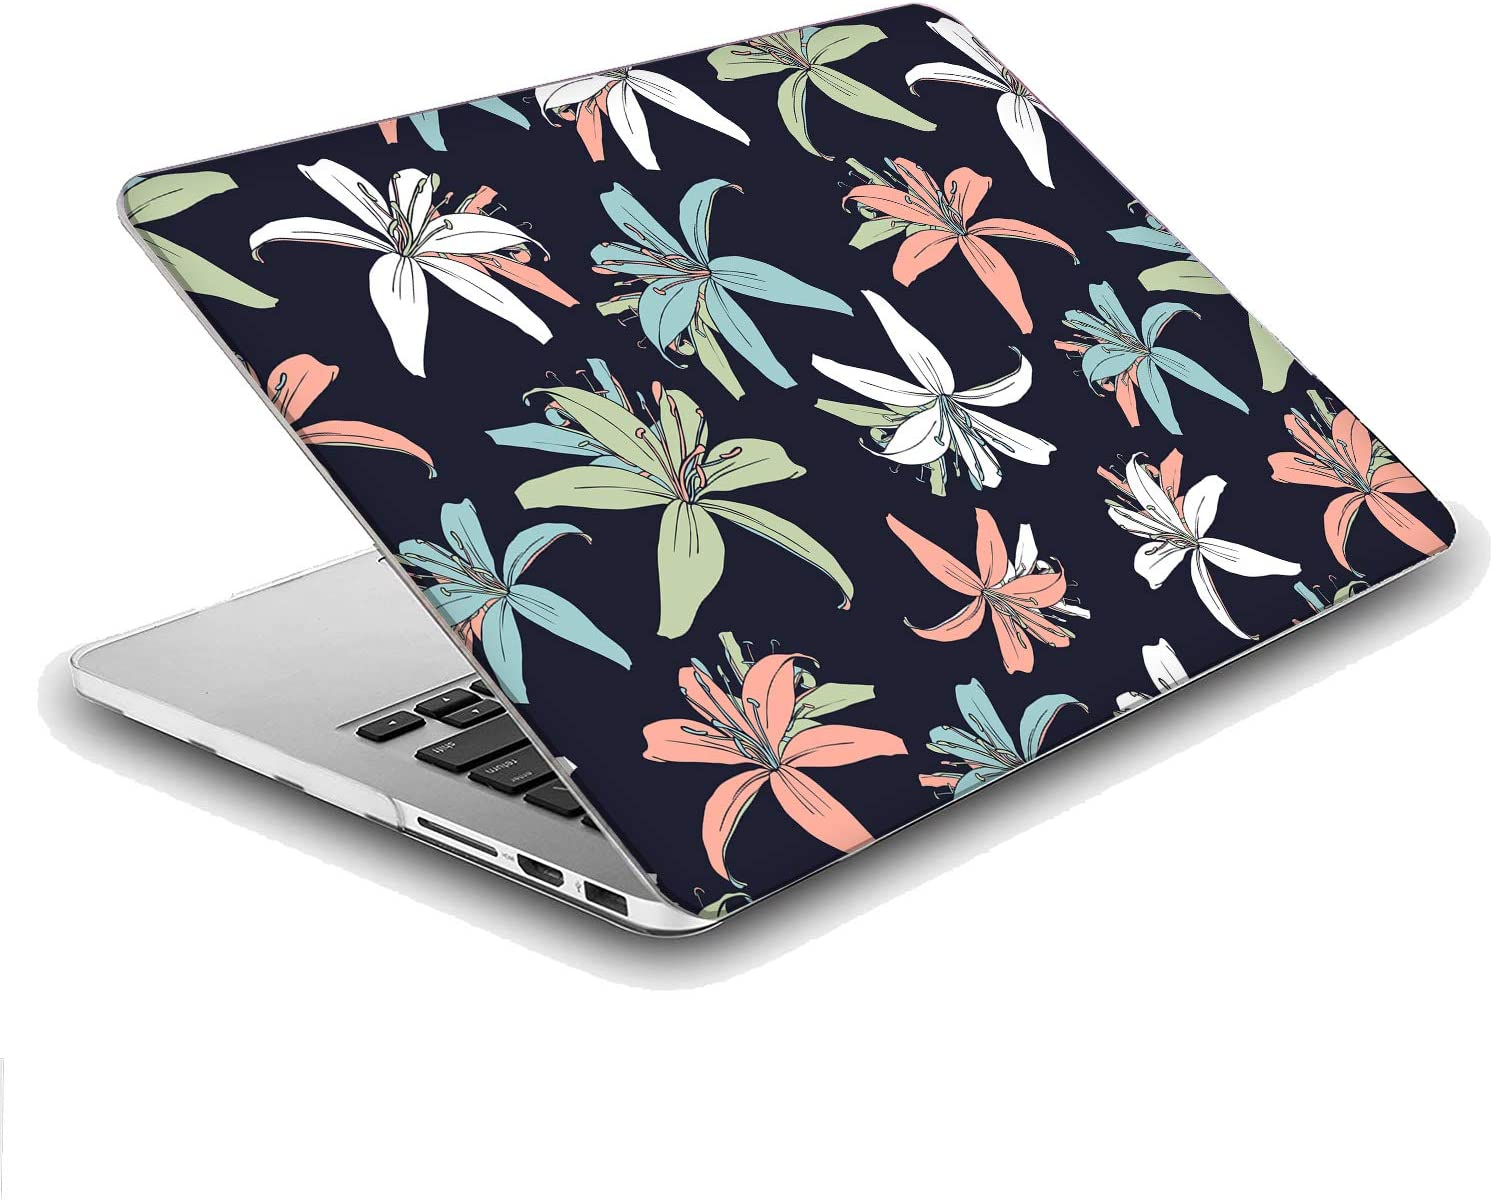 Compatible with MacBook Air 13 inch Hard Plastic Shell Cover Case A1932, 2019 2018 Release Vintage Flower Tiger Lily Floral Pattern